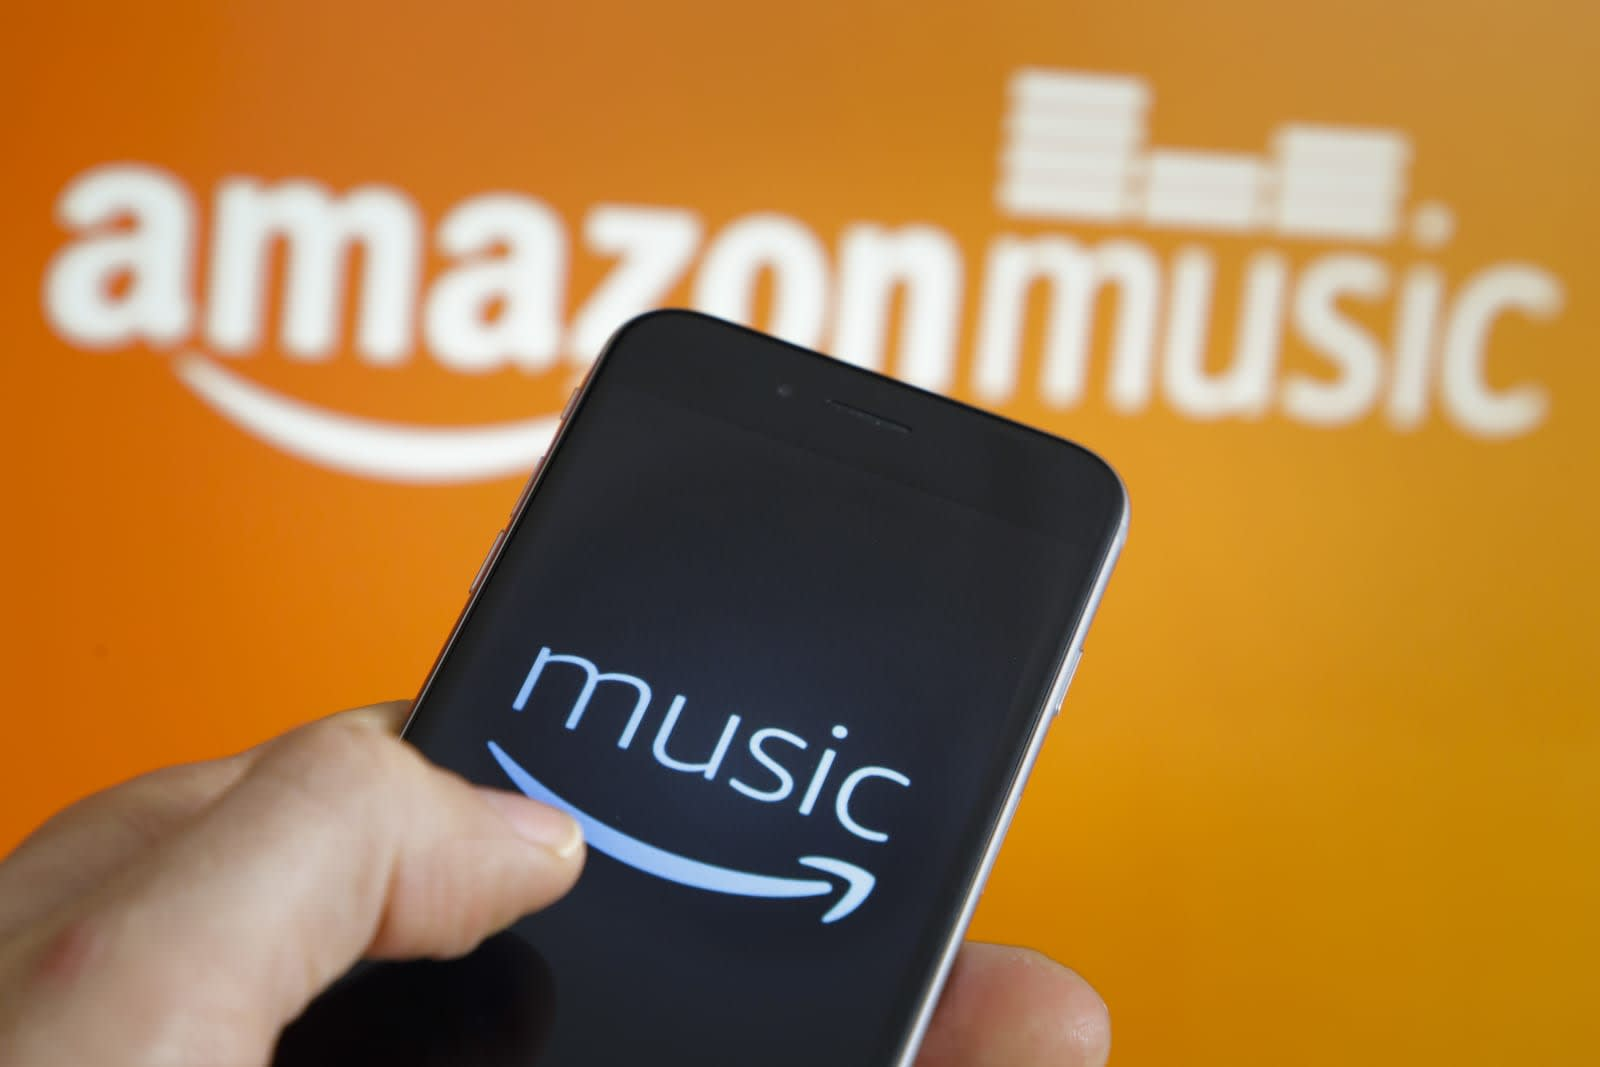 Amazon Music app now offers hands-free control thanks to Alexa